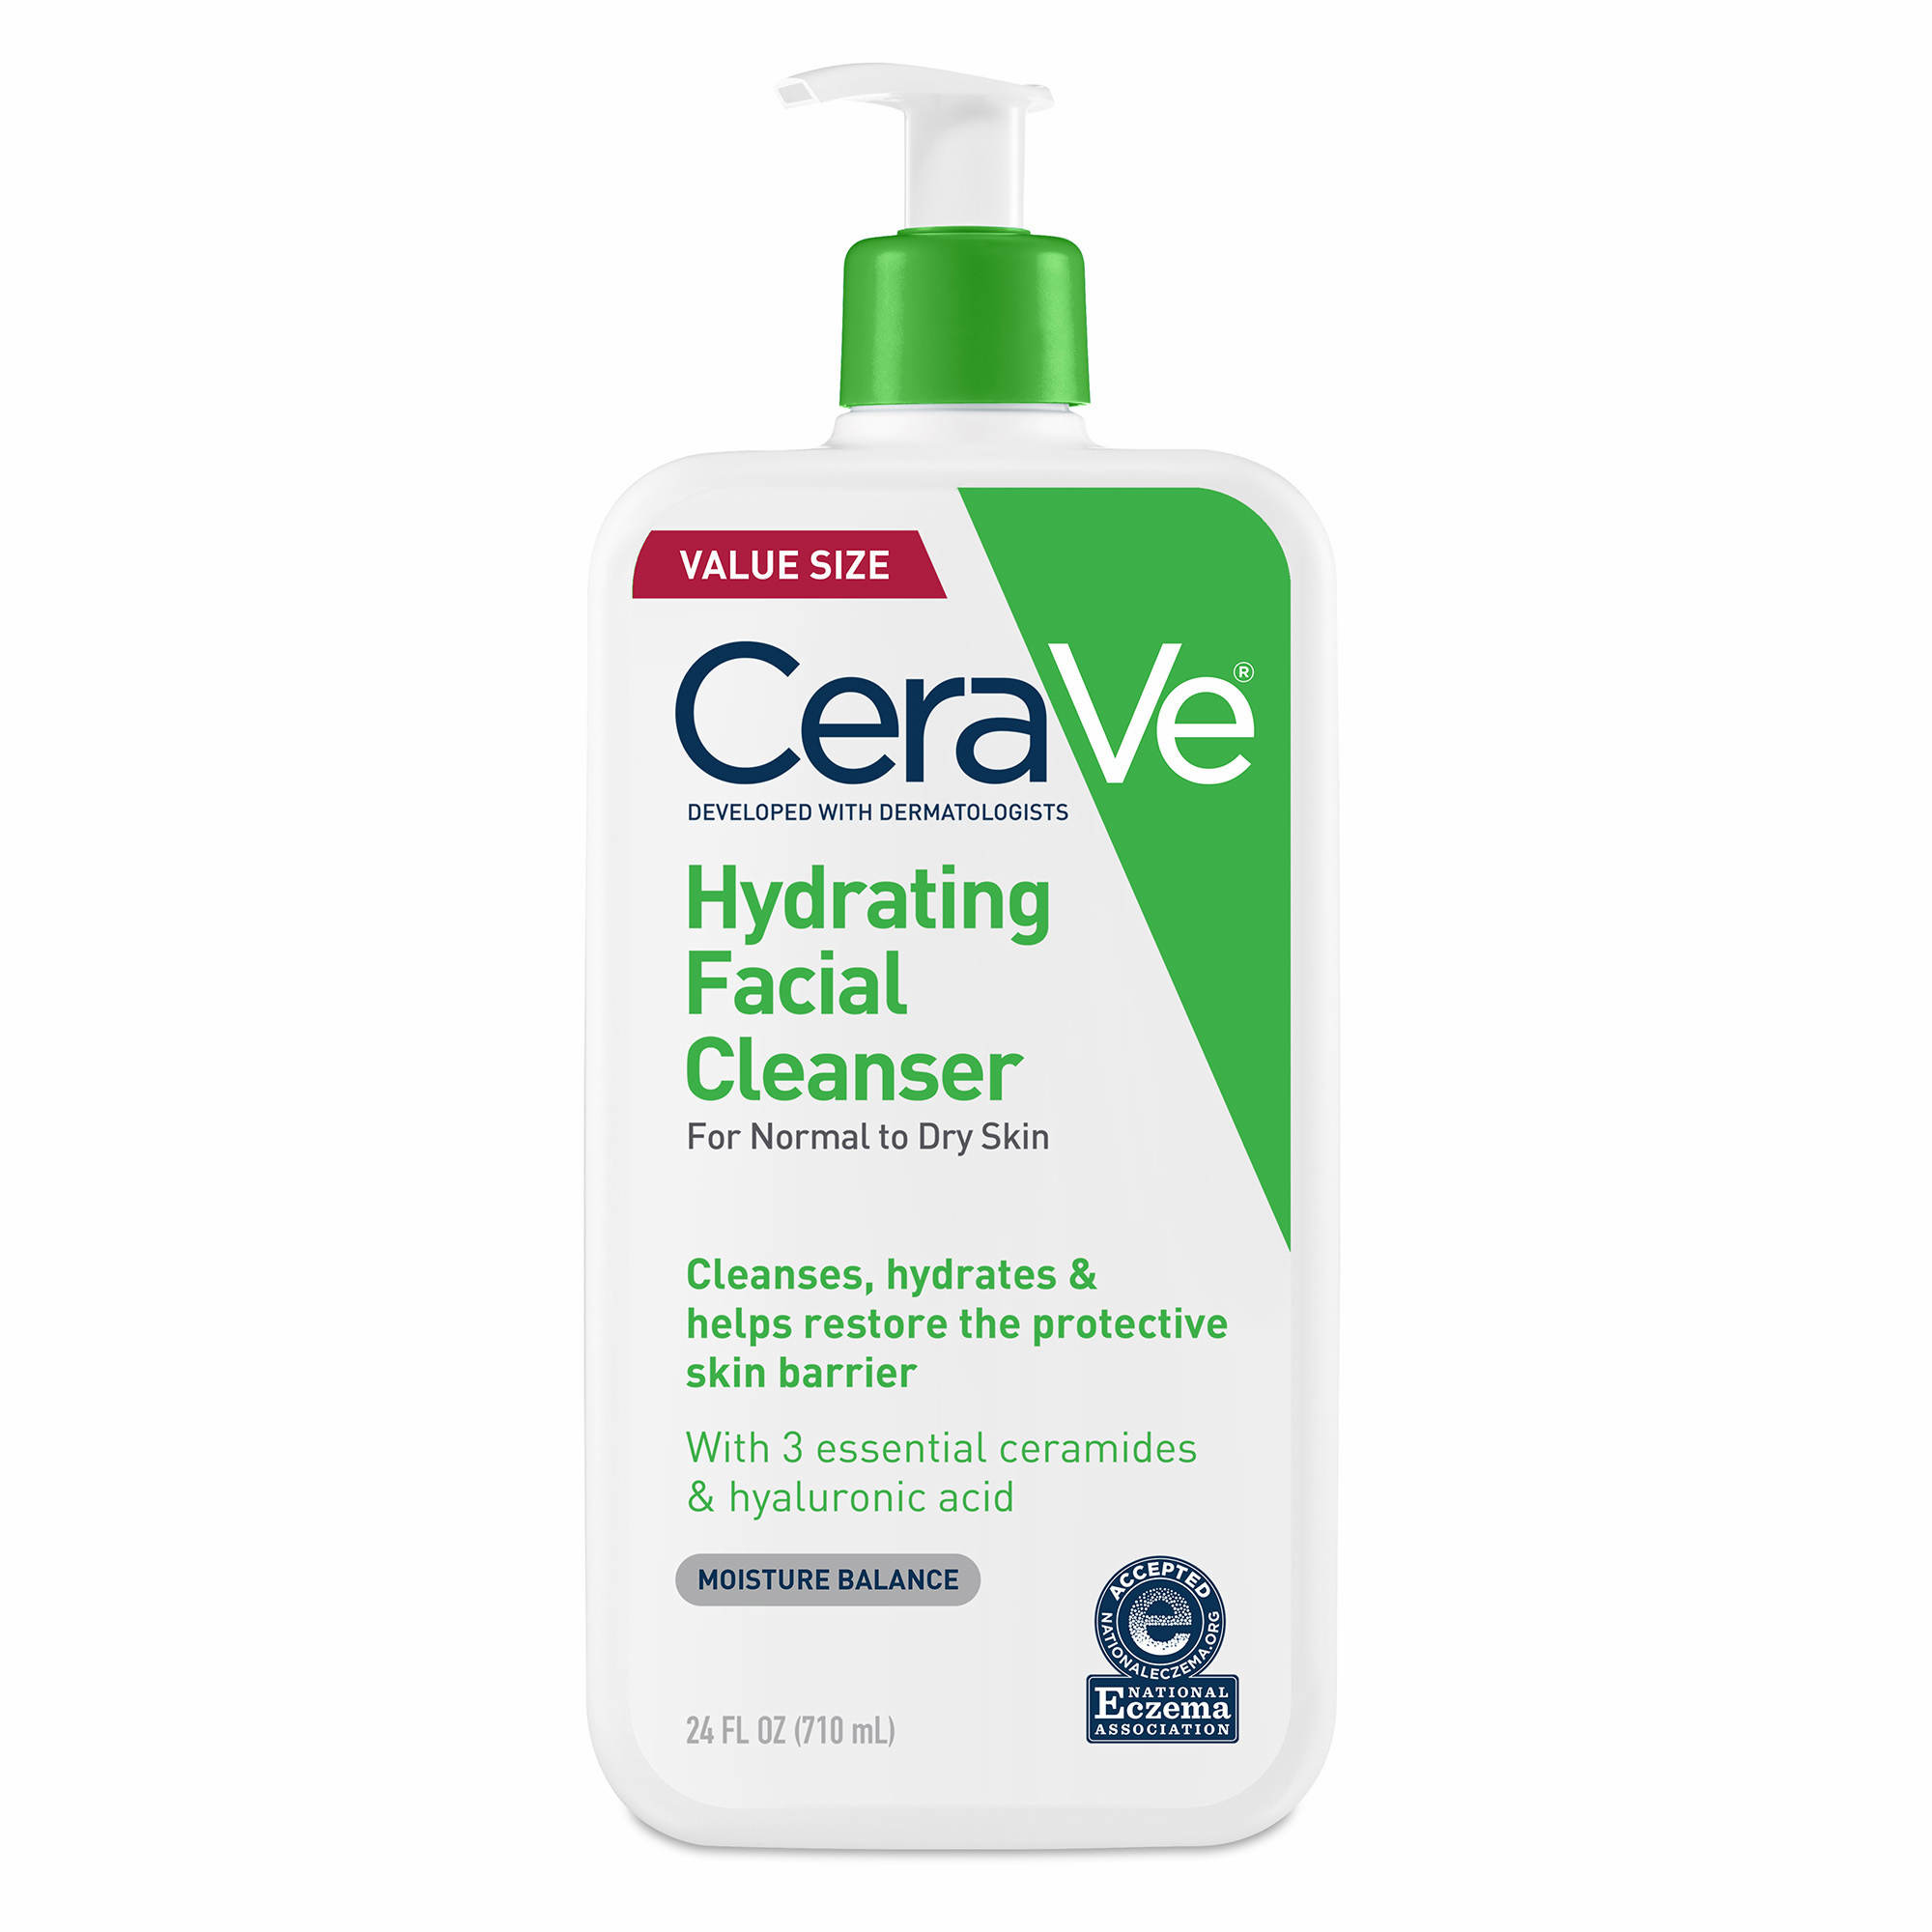 Cerave Hydrating Facial Cleanser, 24 oz.